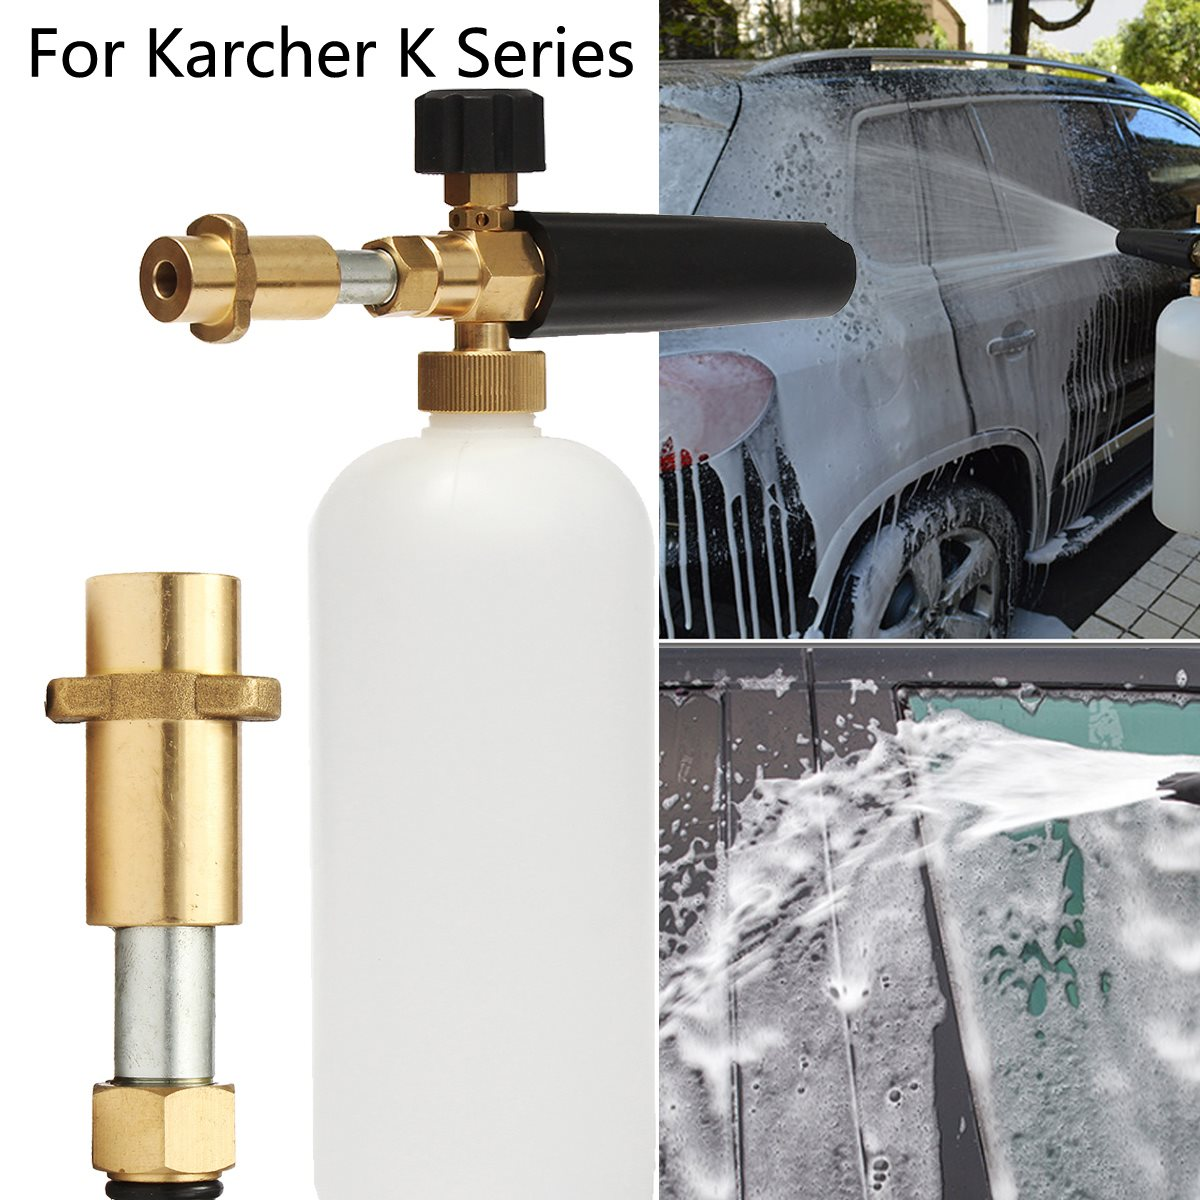 Pressure Sprayer Car Washer Compatible Foam Bottle For Karcher K Series ...